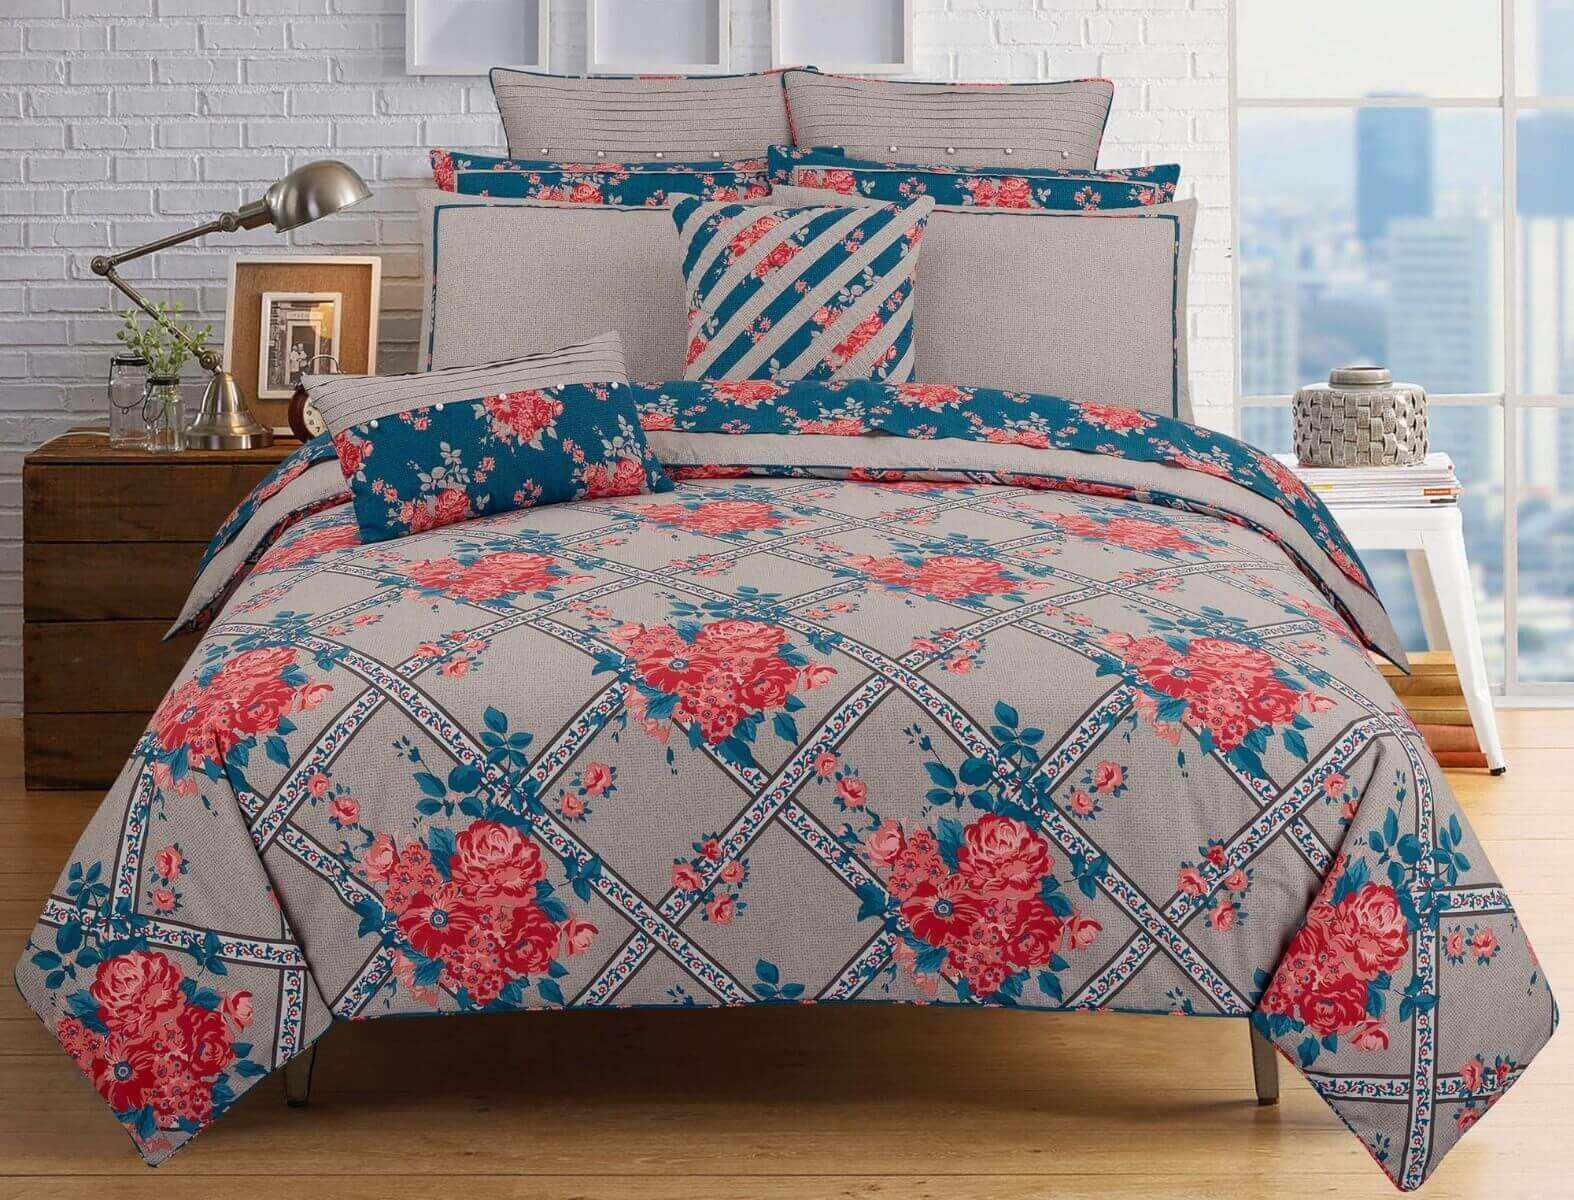 Coral Rose Design Quilt Cover Set For Your Bed